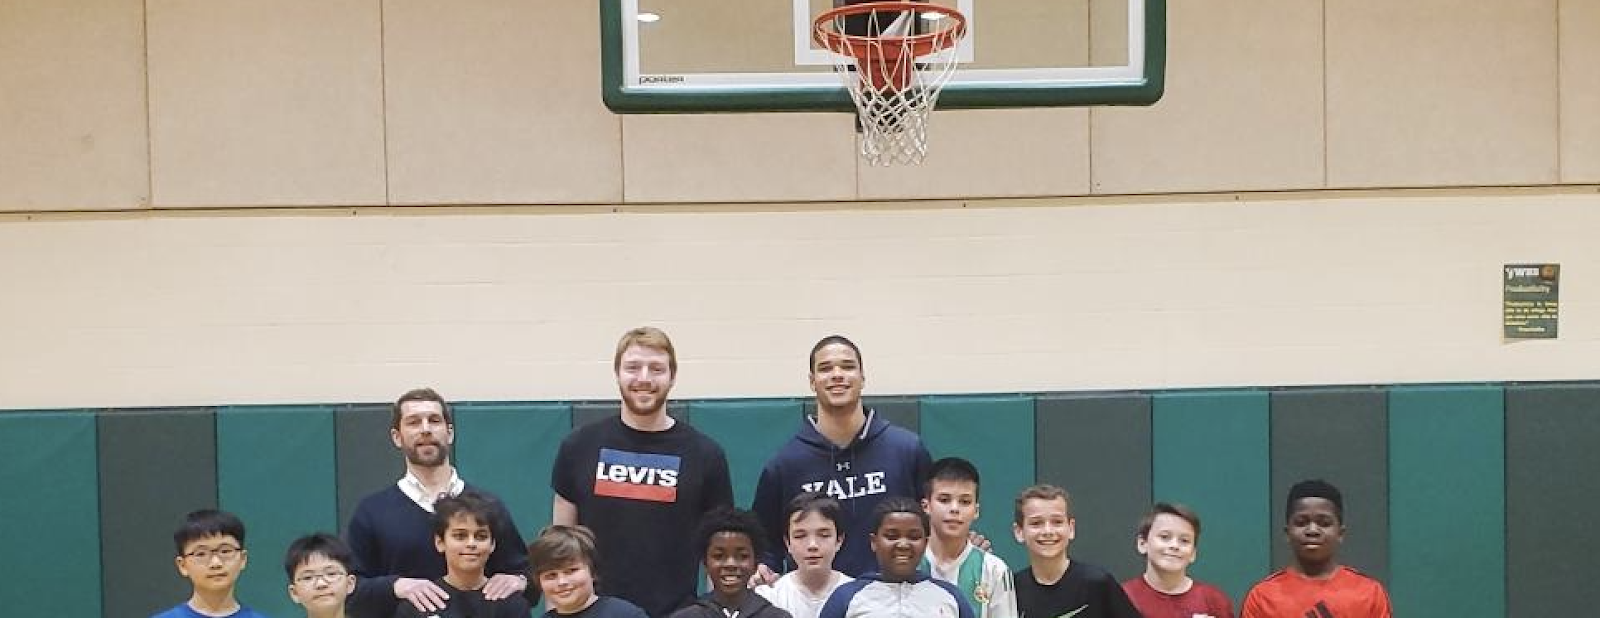 WHBA Grades 5-6 Players with Yale Student Athletes